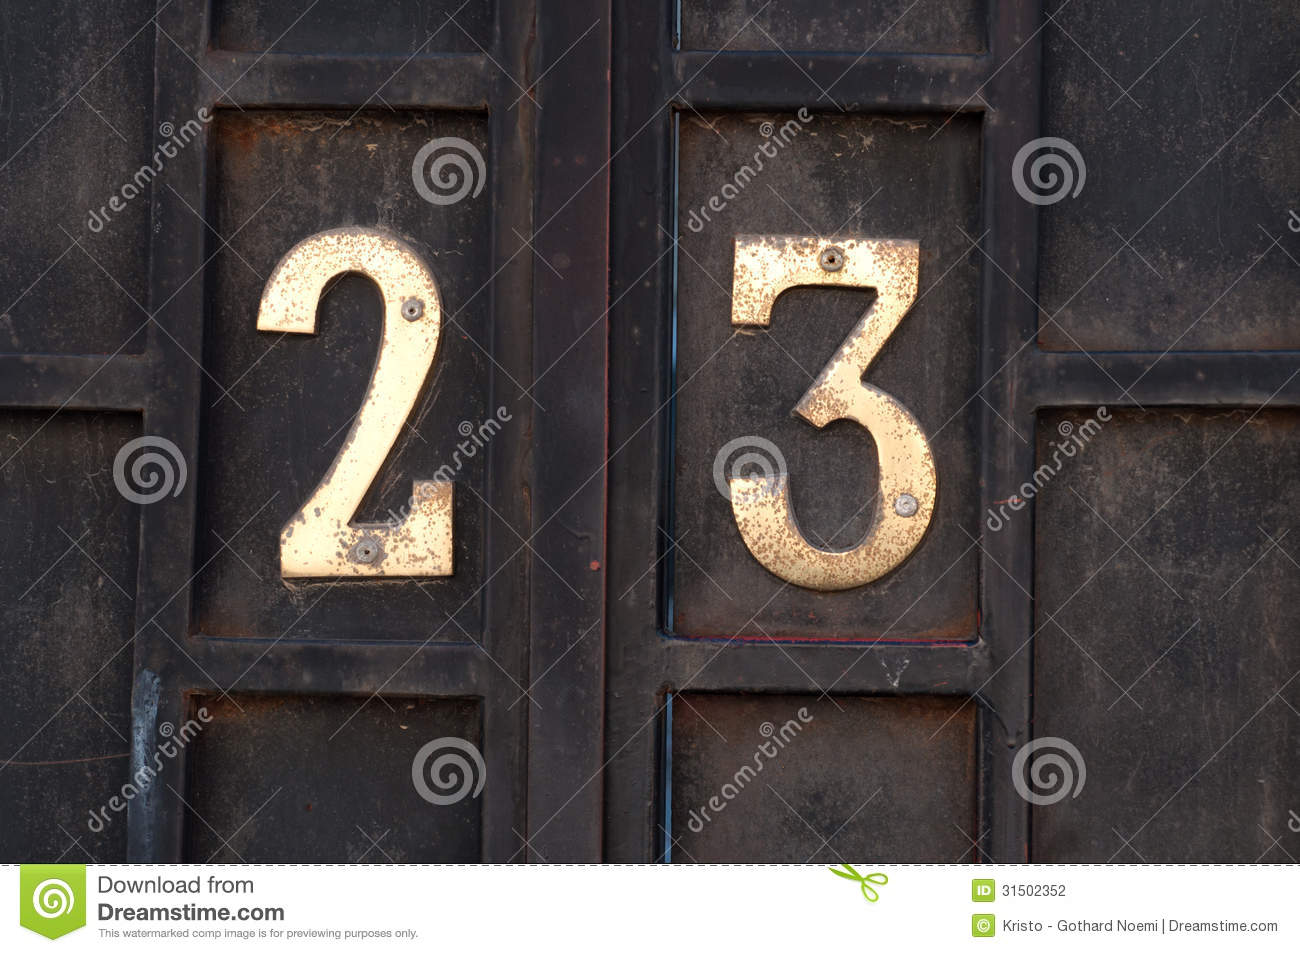 House number 23 & House number 23 stock photo. Image of home unit design - 31502352